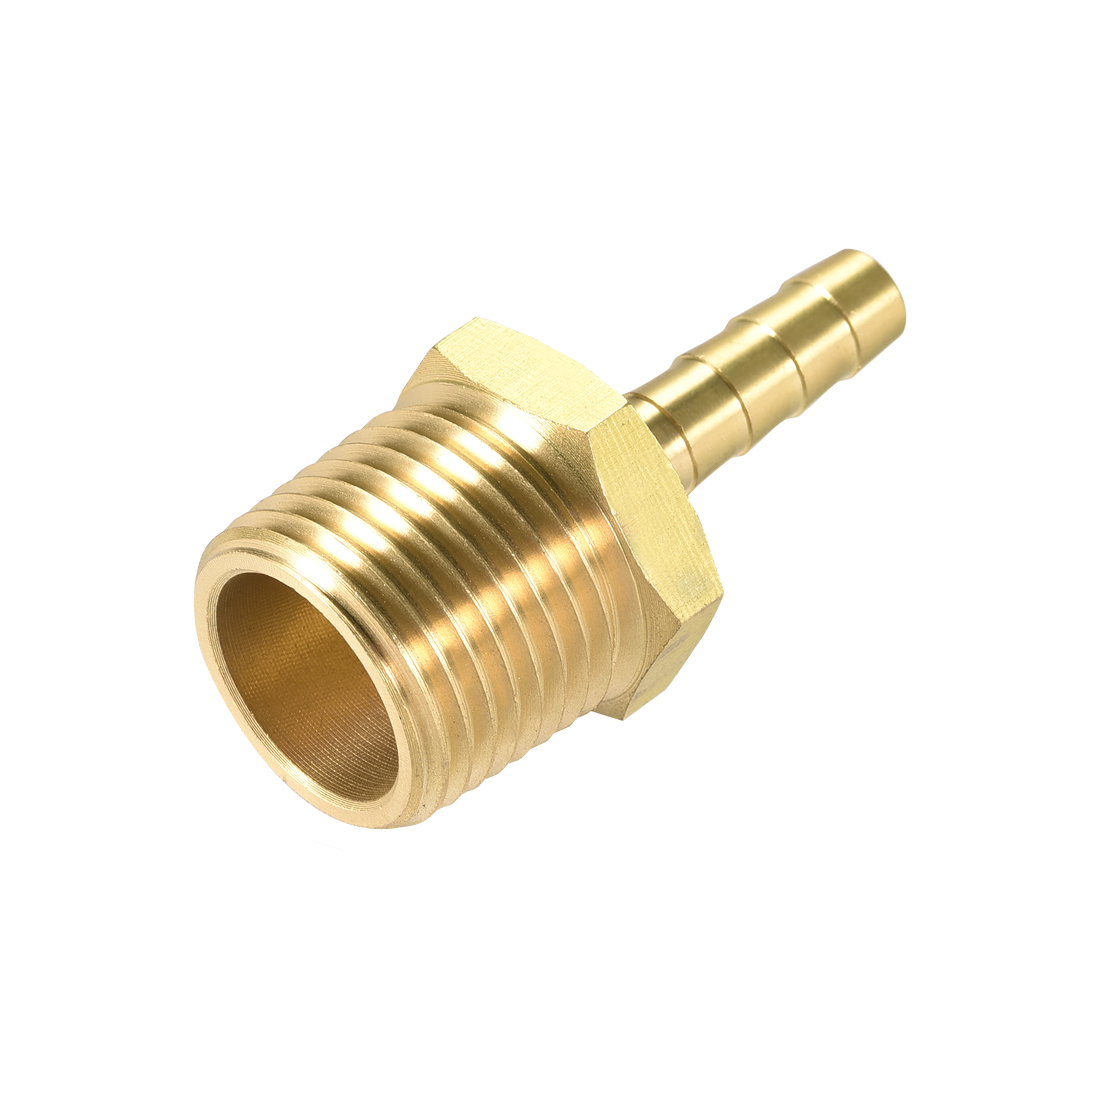 Brass Barb Hose Fitting Connector Adapter 1/4inch Barbed x 1/2 NPT Male Pipe